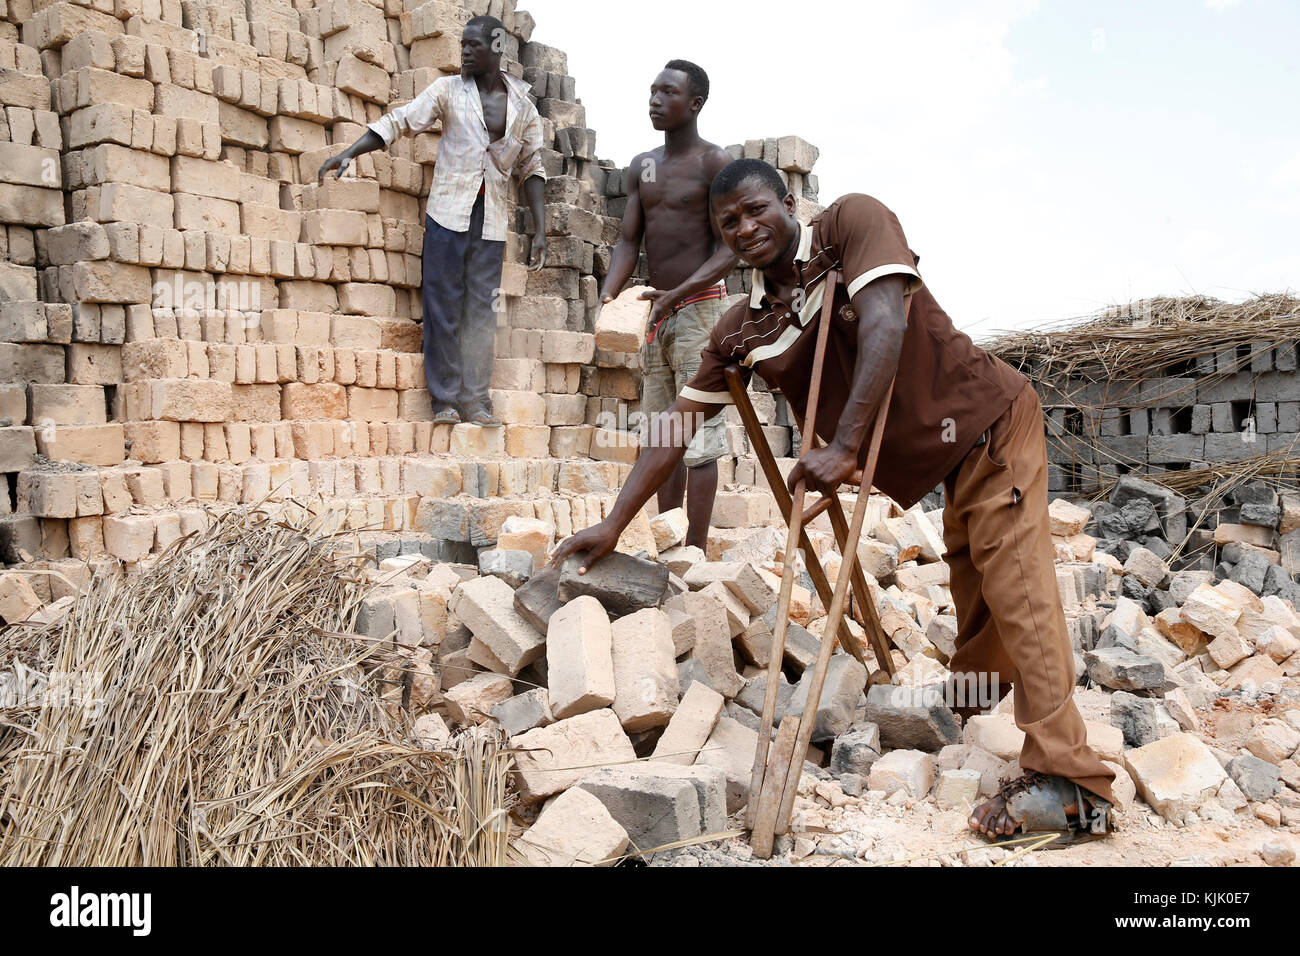 Charles Barikrungi received 4 loans from ENCOT Microfinance. He employs 20 workers on his brick factory. Uganda - Stock Image